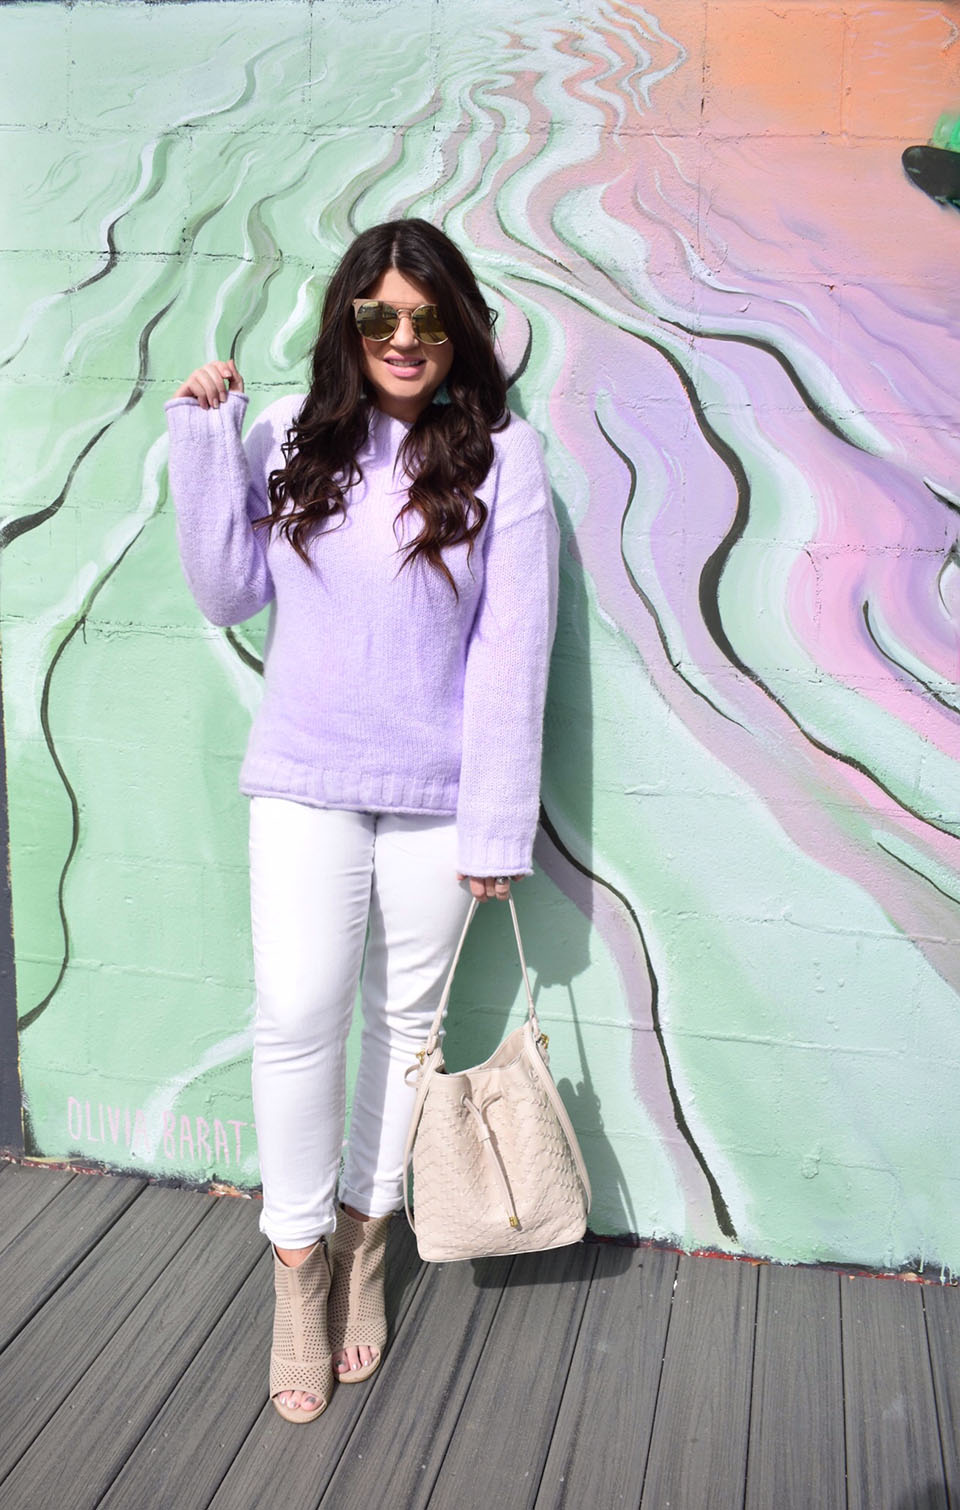 Spring Trend: Lilac // Jami Ray wearing a lilac sweater at a Tallahassee street art wall.